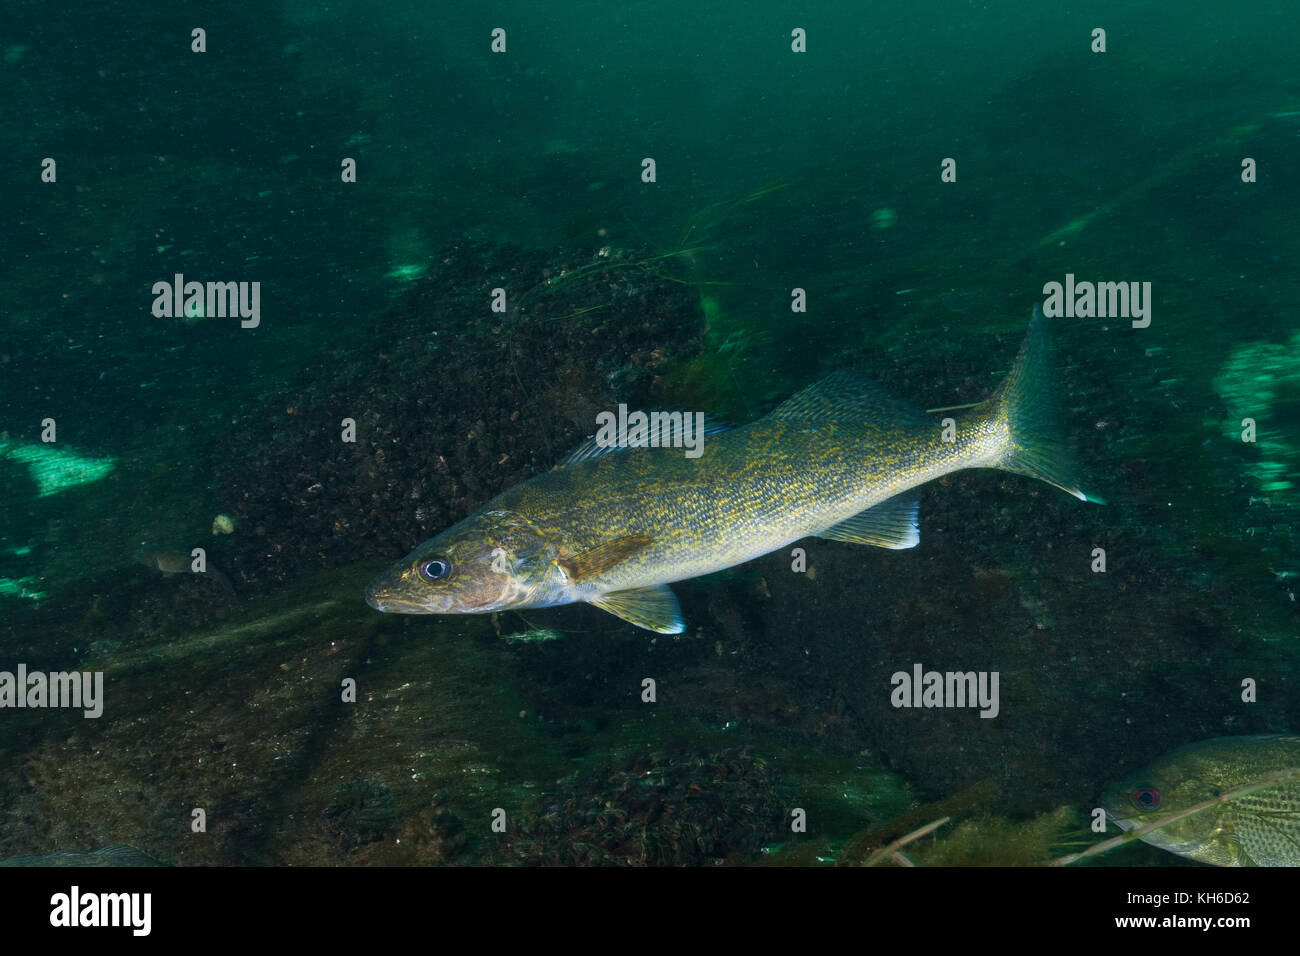 Walleye stock photos walleye stock images alamy for St lawrence river fishing